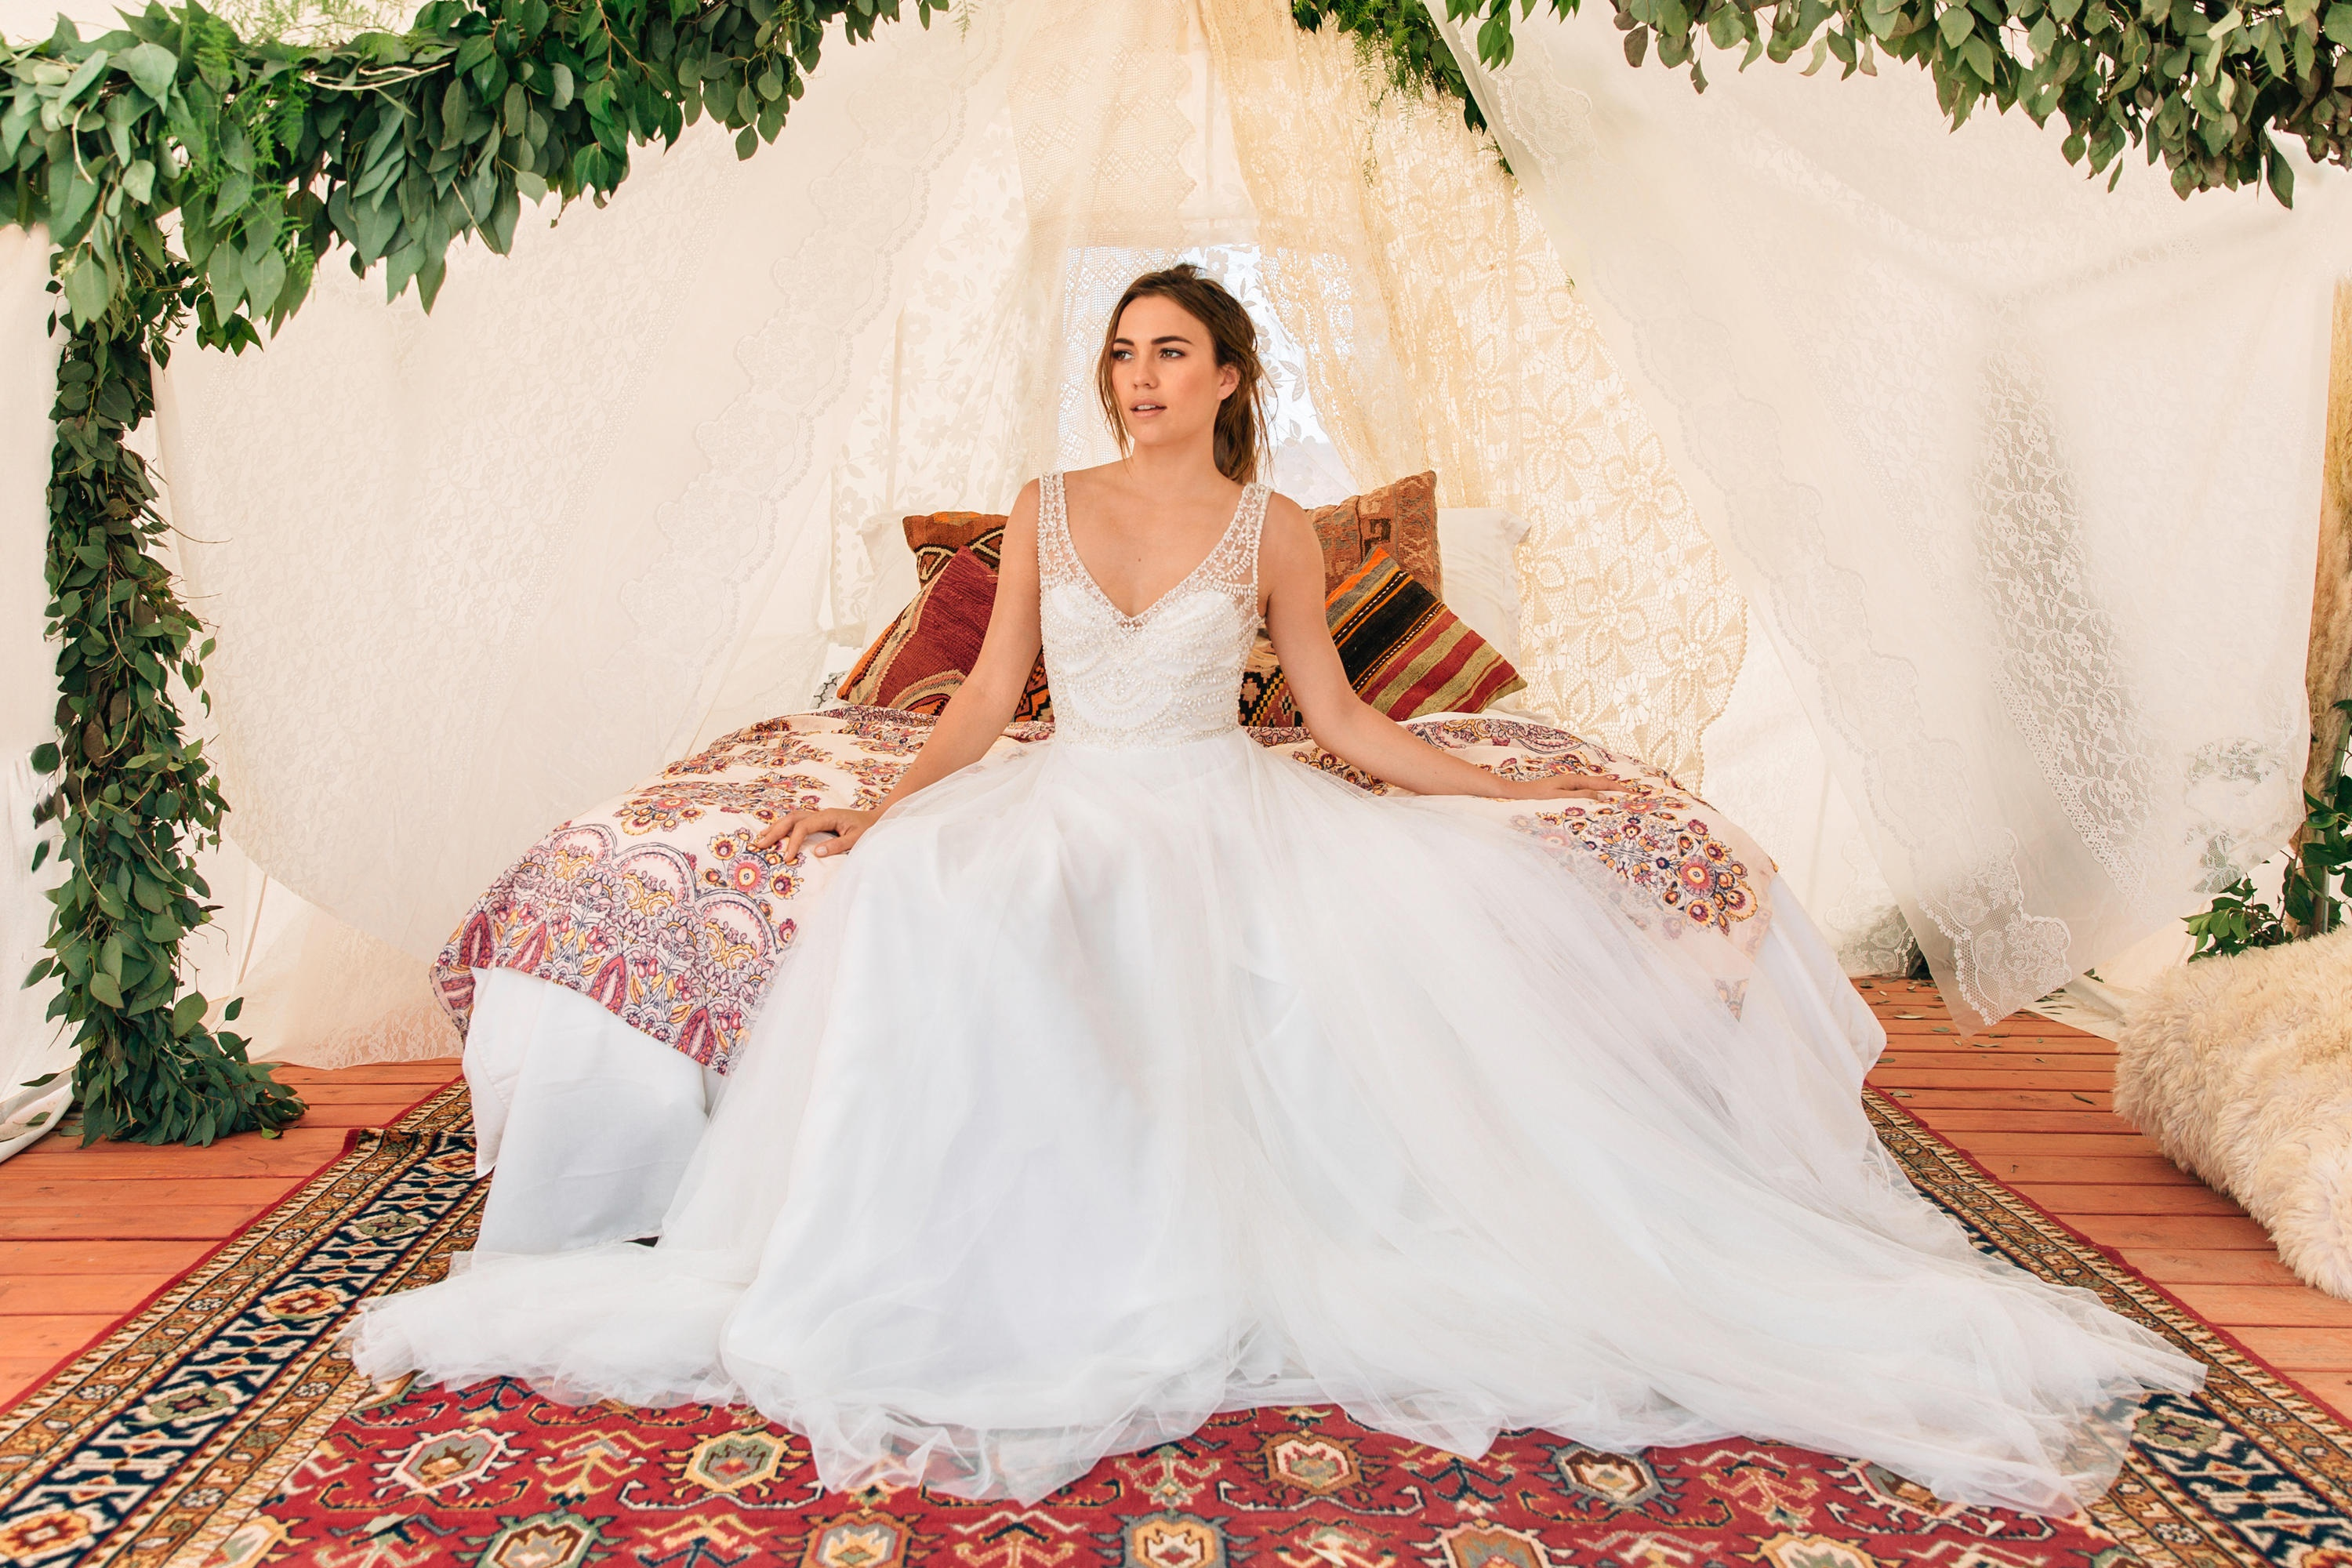 UNBELIEVABLE This Is Why Every Bride Wears White On Their Wedding Day